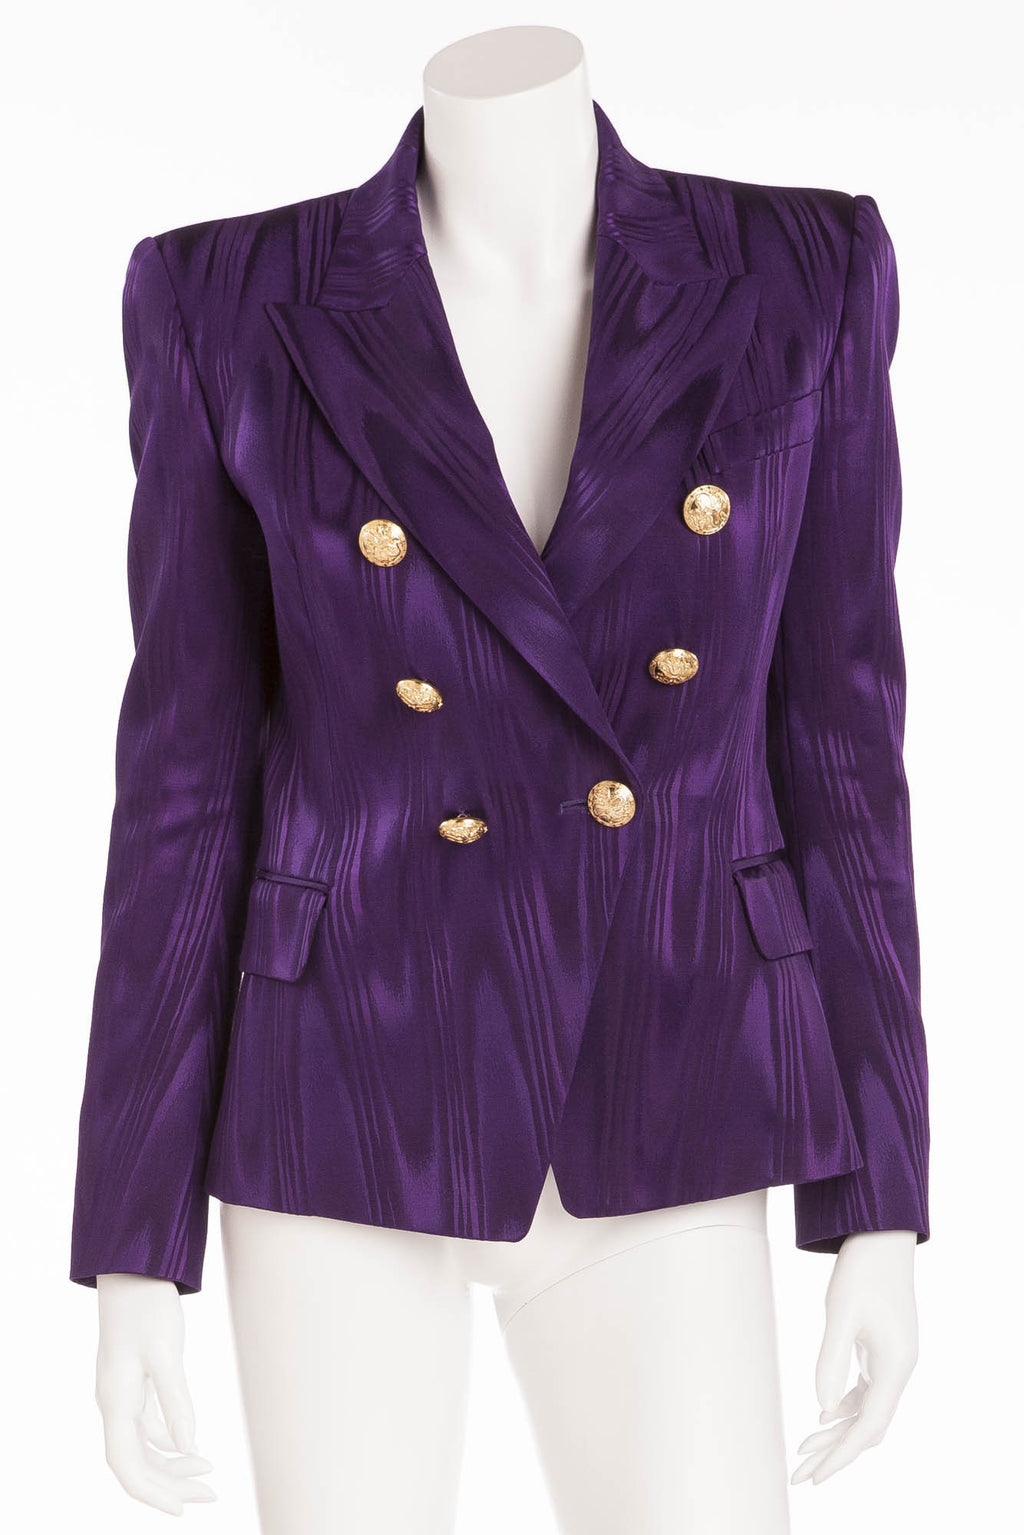 Balmain - Moire Effect Purple Striped Blazer Gold Buttons - FR 40